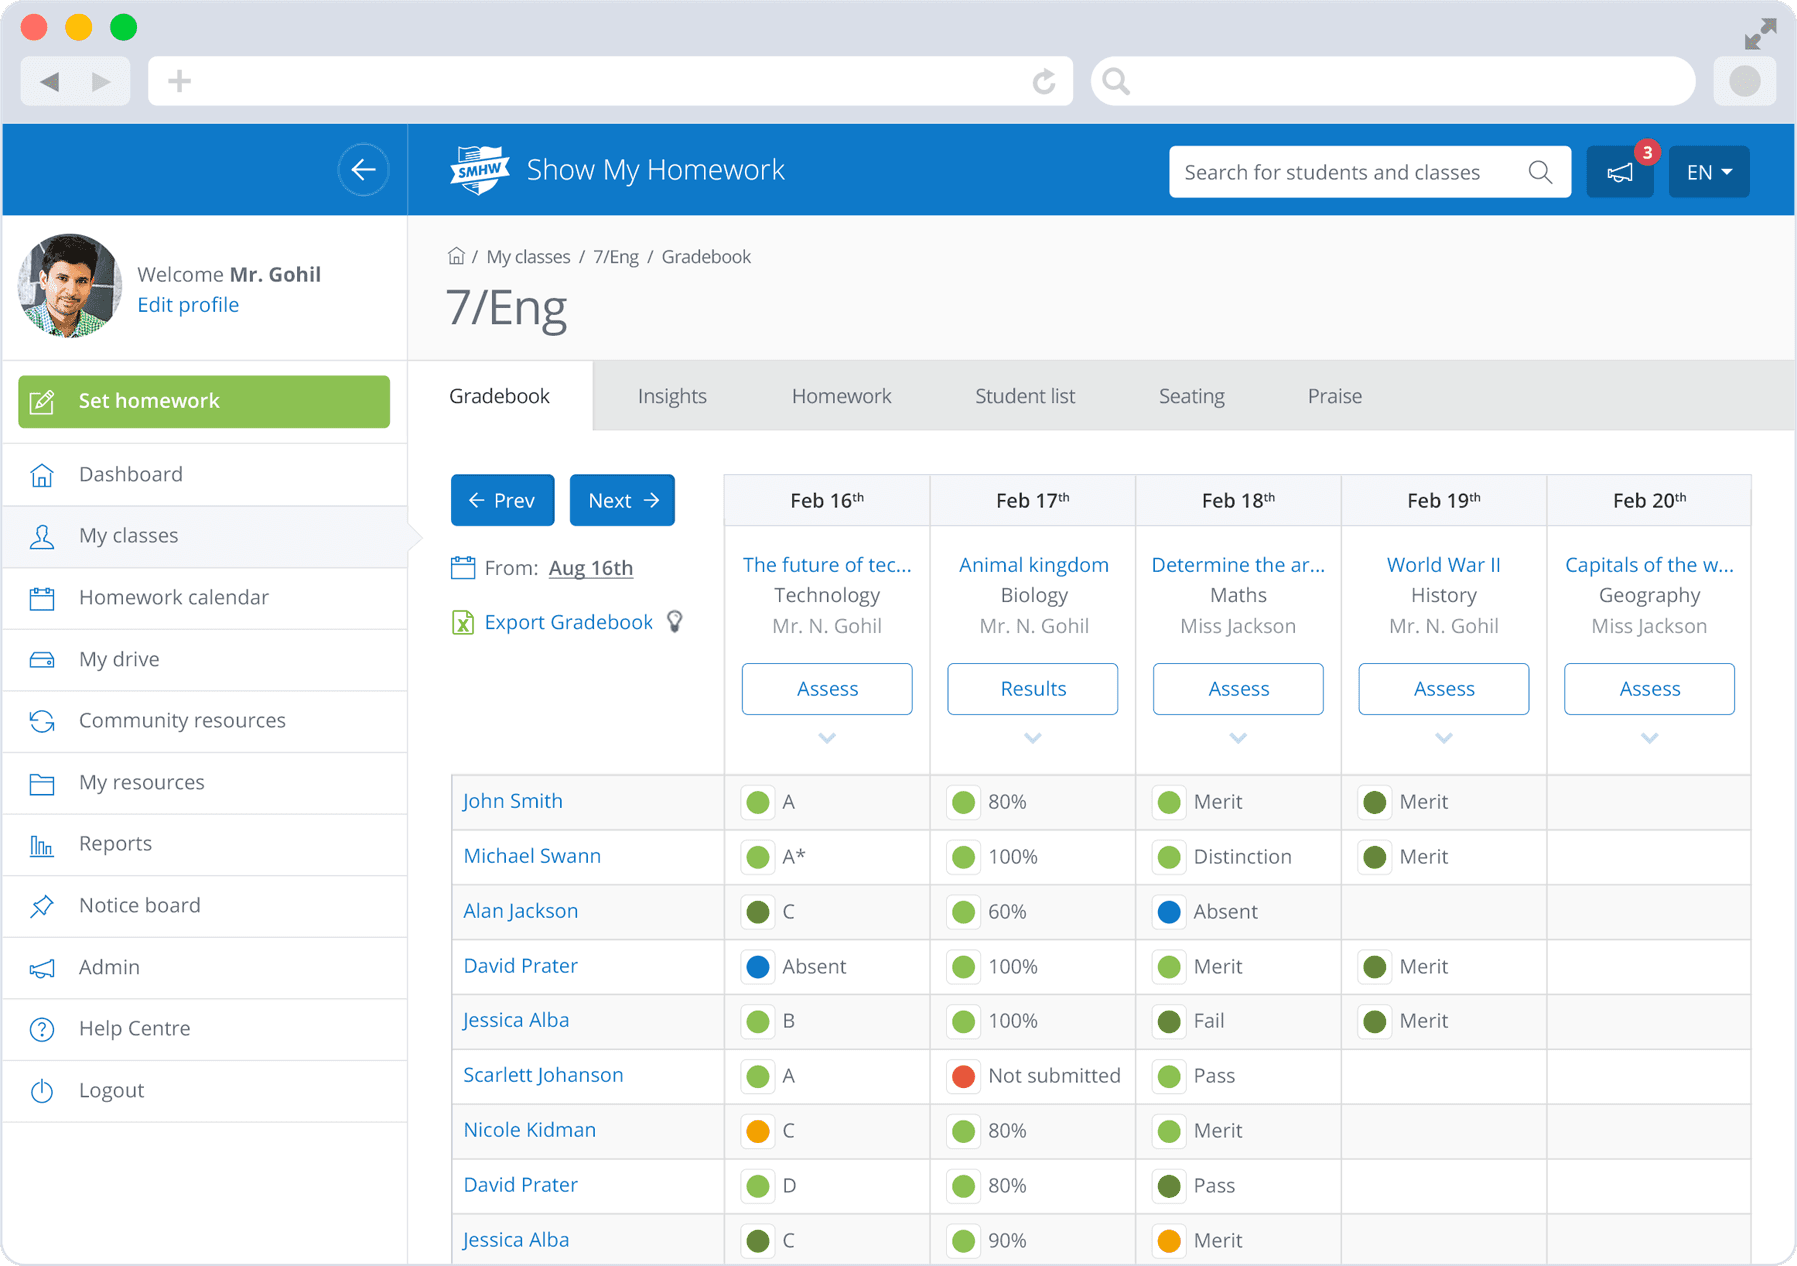 The gradebook feature displaying submission details and grades for students